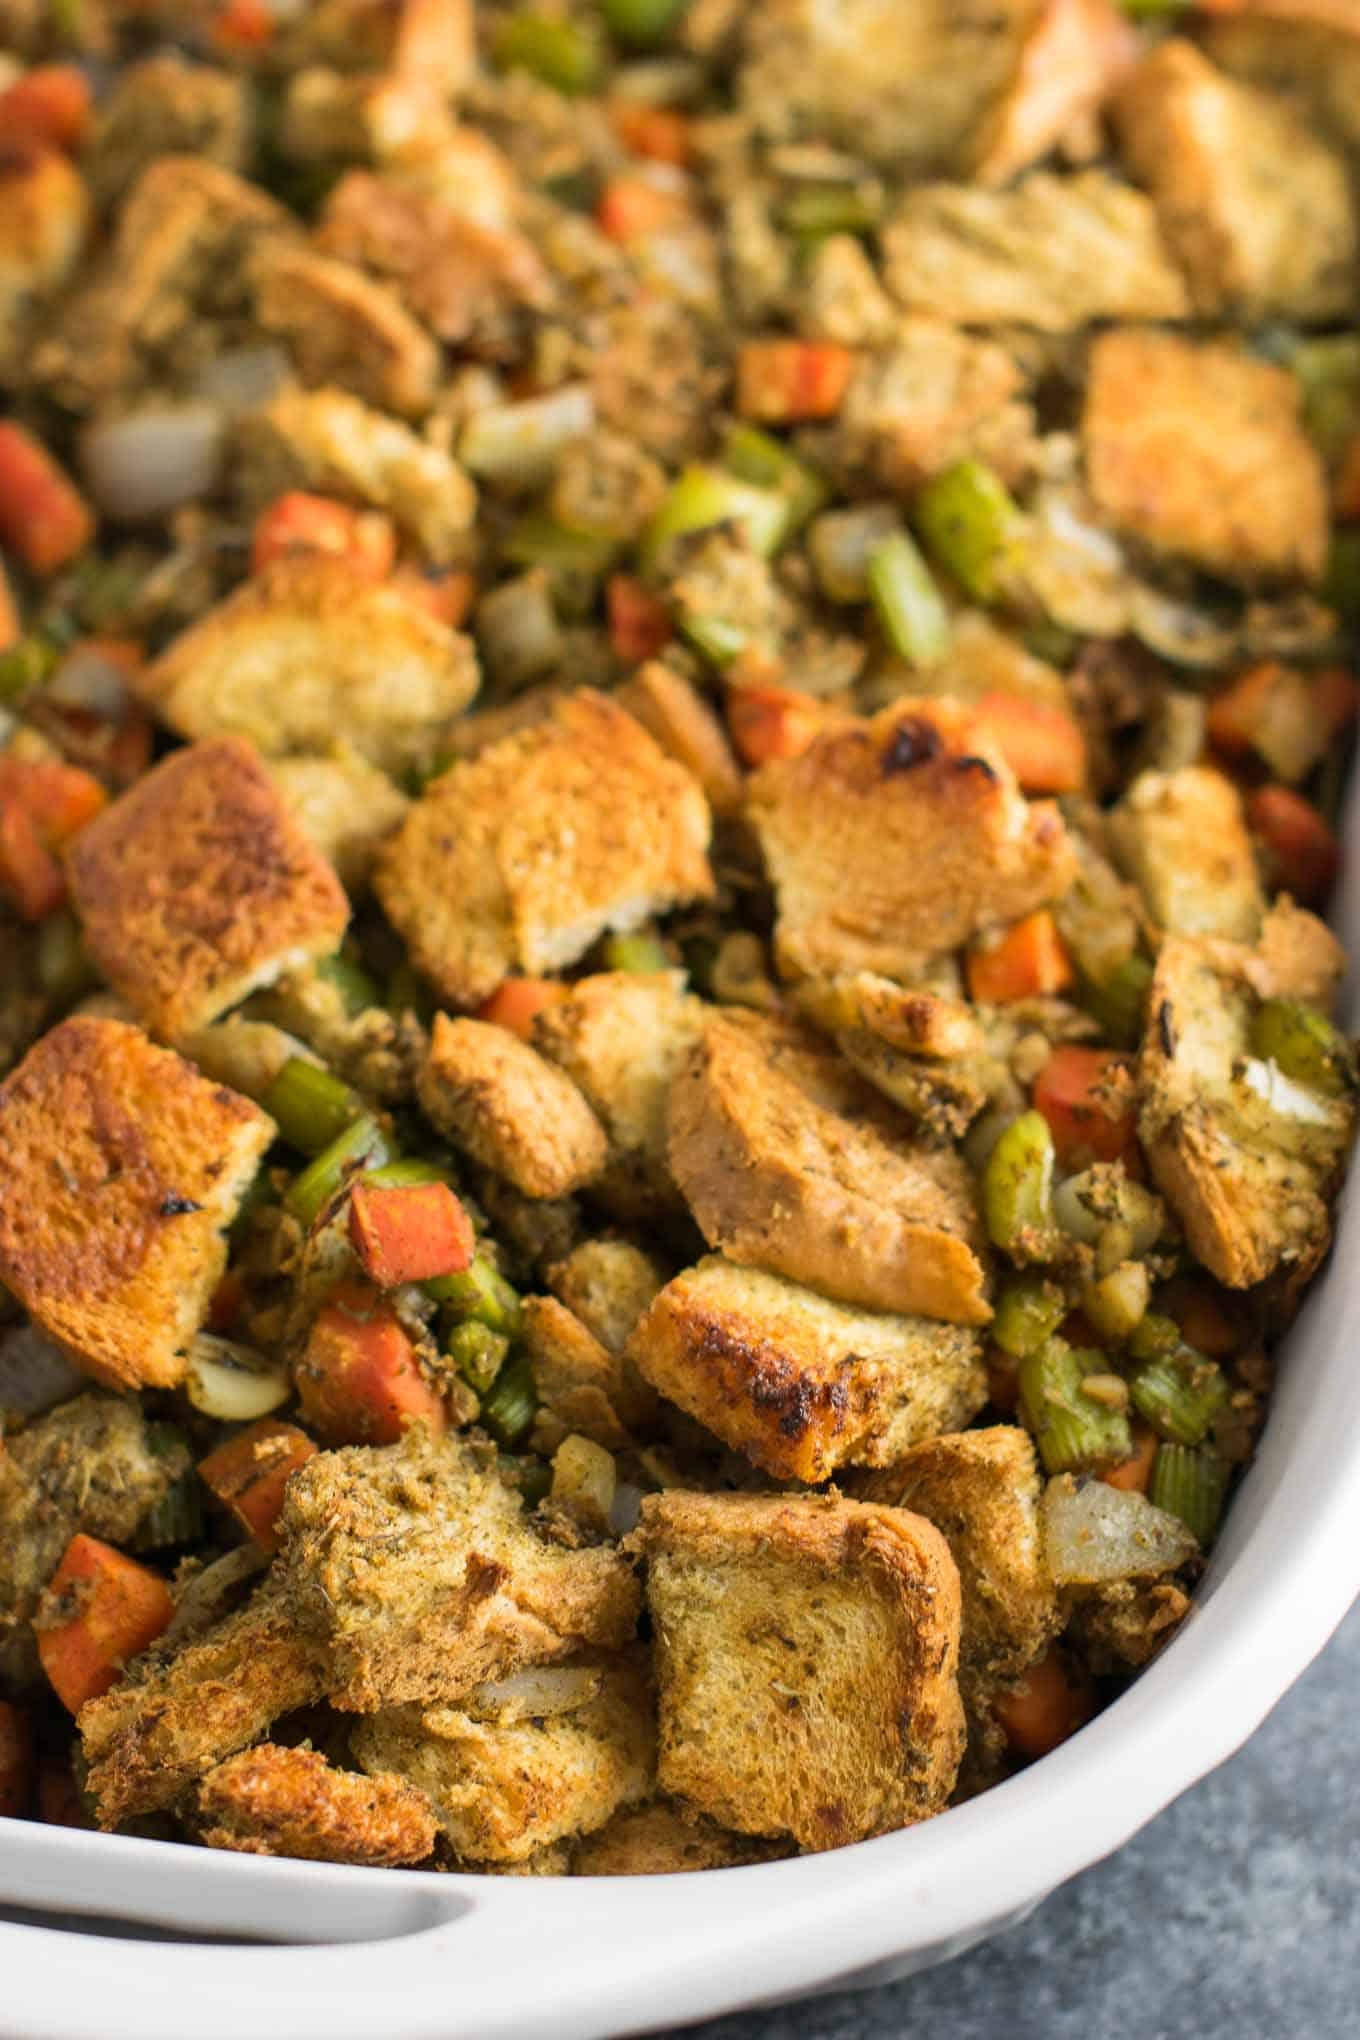 This easy vegan stuffing is simple to make and packed full of flavor. Easily made gluten free! This one will be a hit at your Thanksgiving table! #vegan #thanksgiving #stuffing #vegetarian